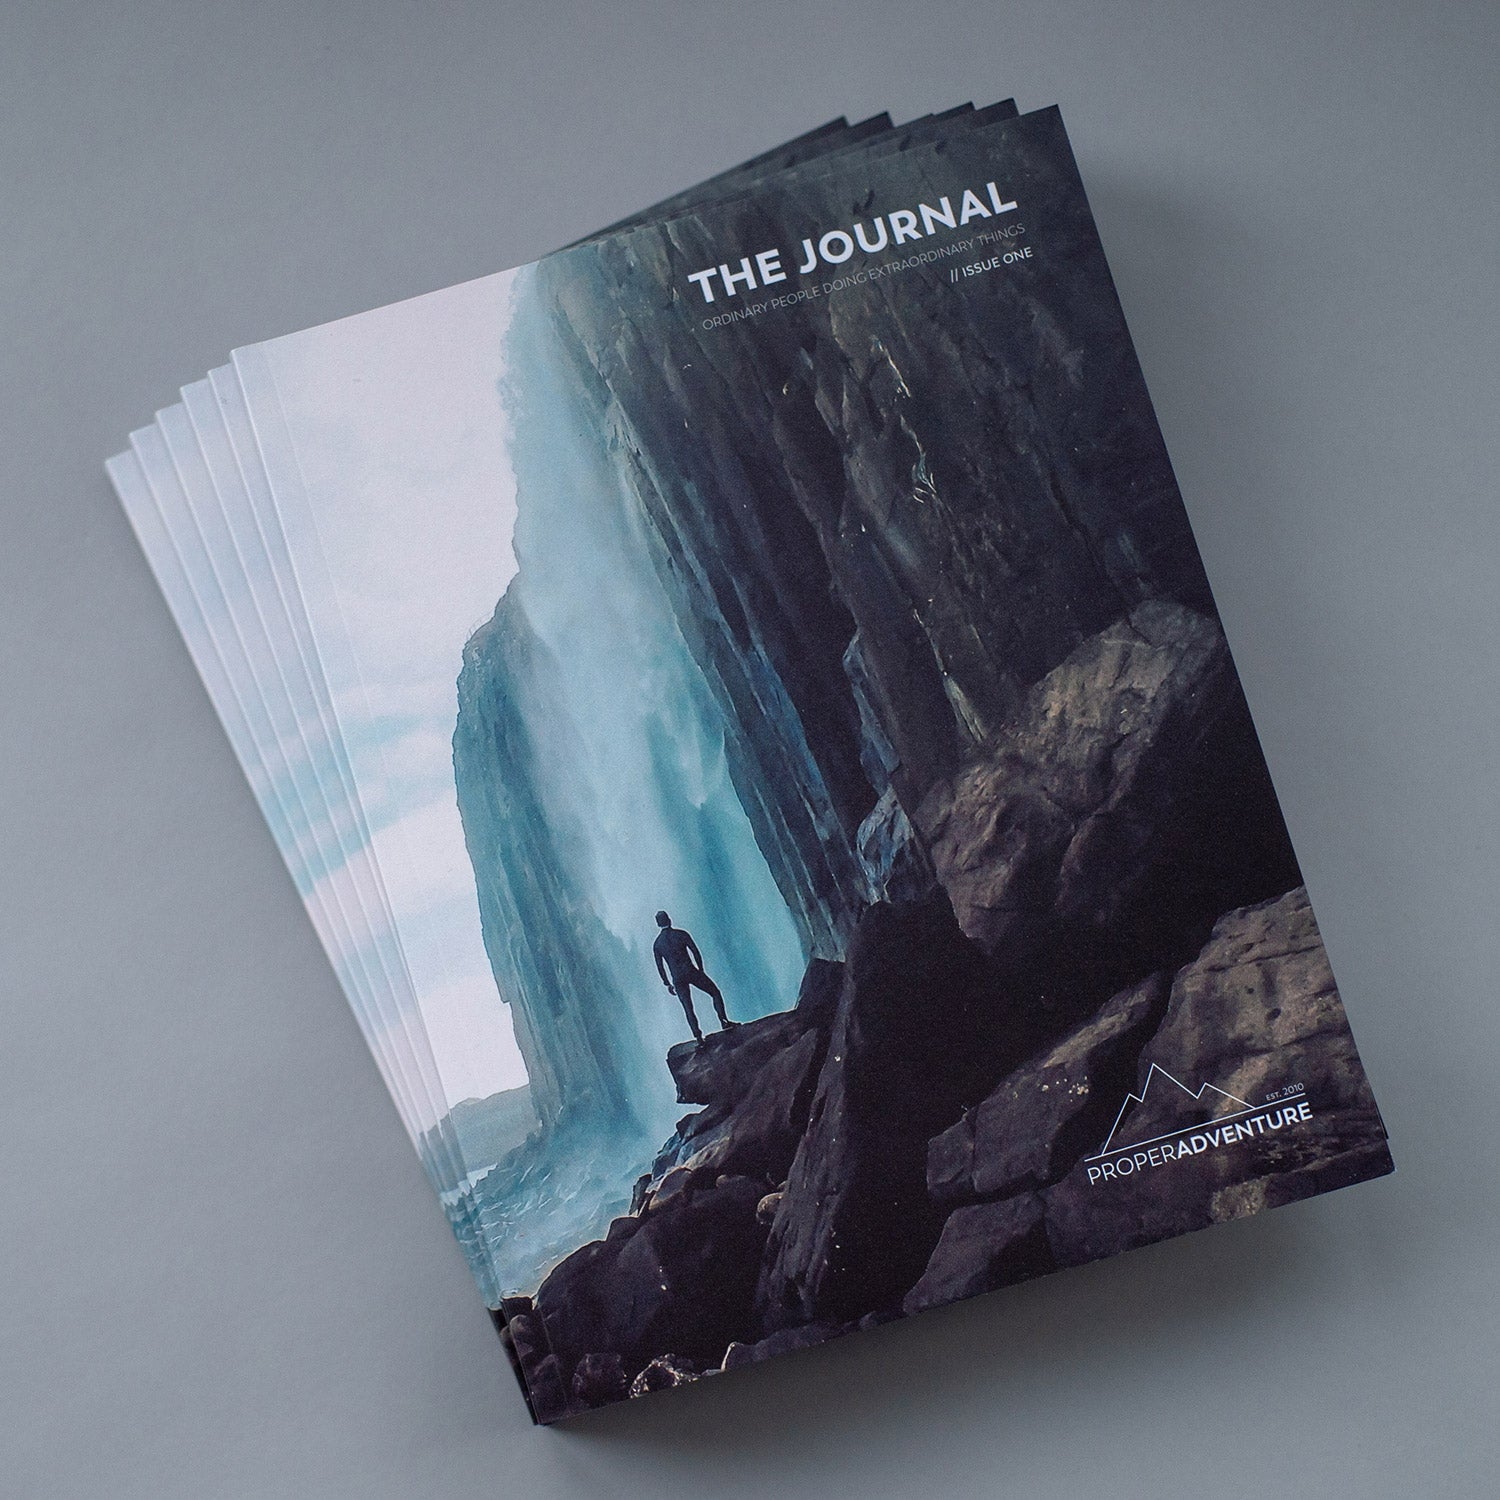 Proper Adventure - Issue One - from OFFGRID Clothing - £10.00